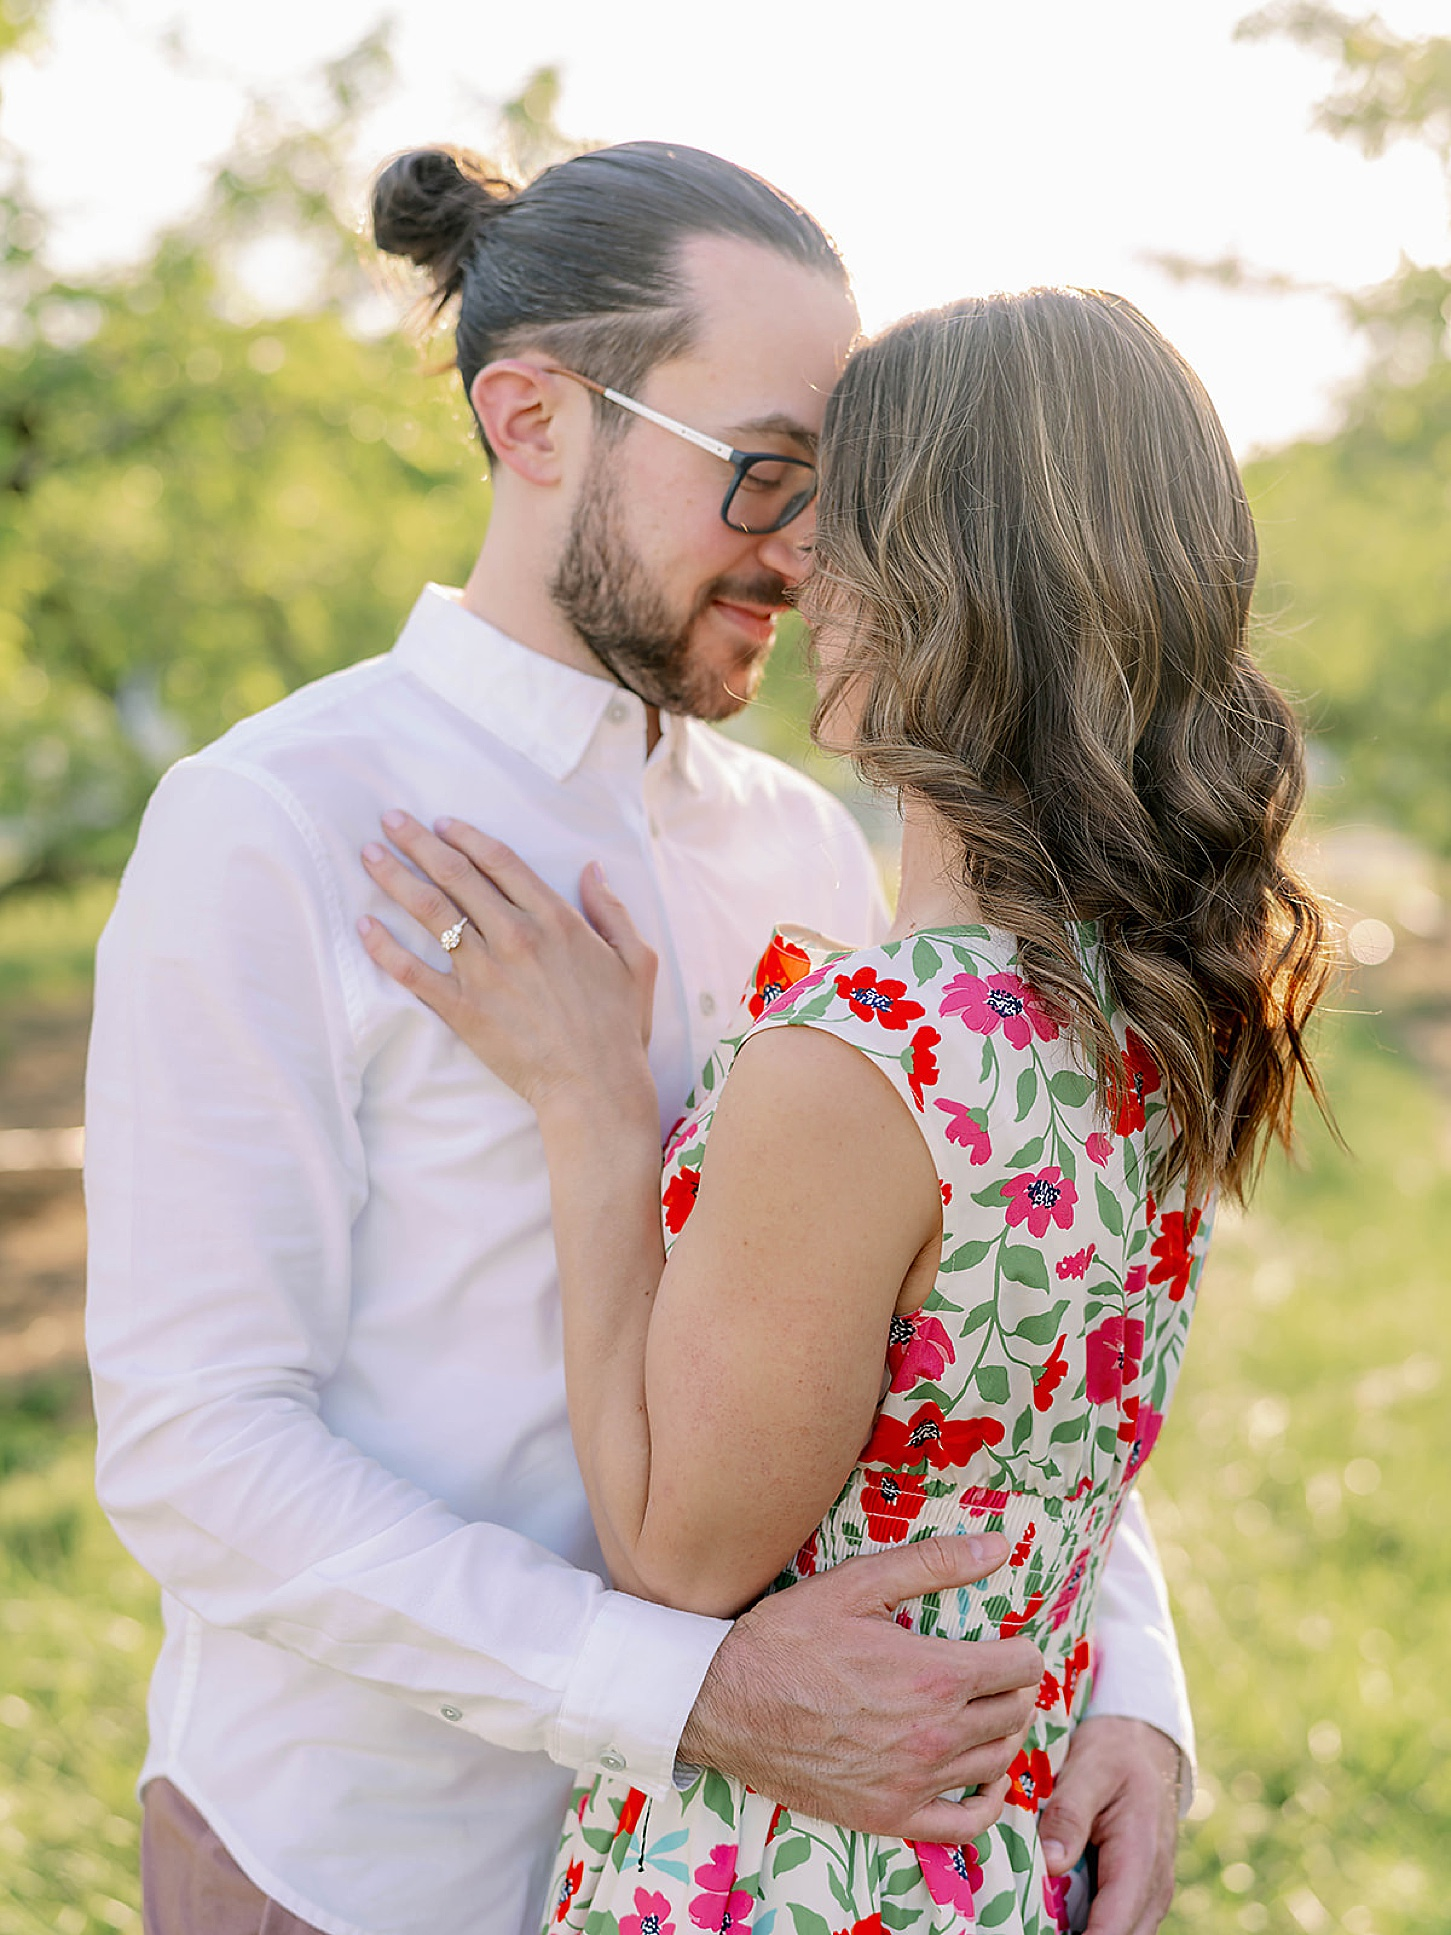 Bast Brothers Garden Center Mullica Hill NJ Engagement Photography by Magdalena Studios 0013